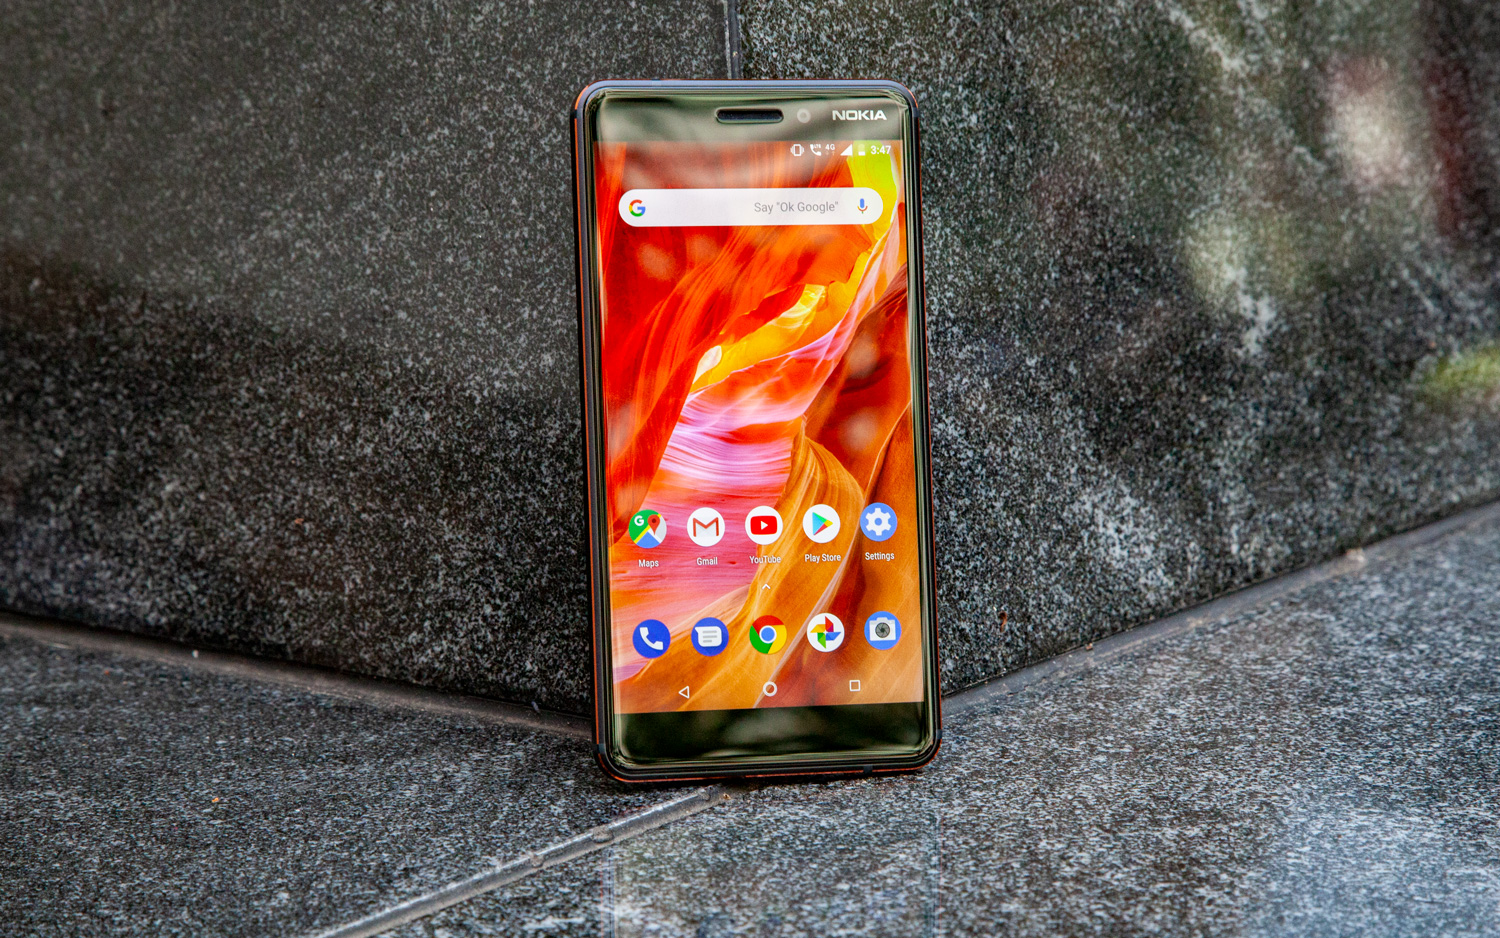 Nokia 6 1 - Full Review and Benchmarks | Tom's Guide